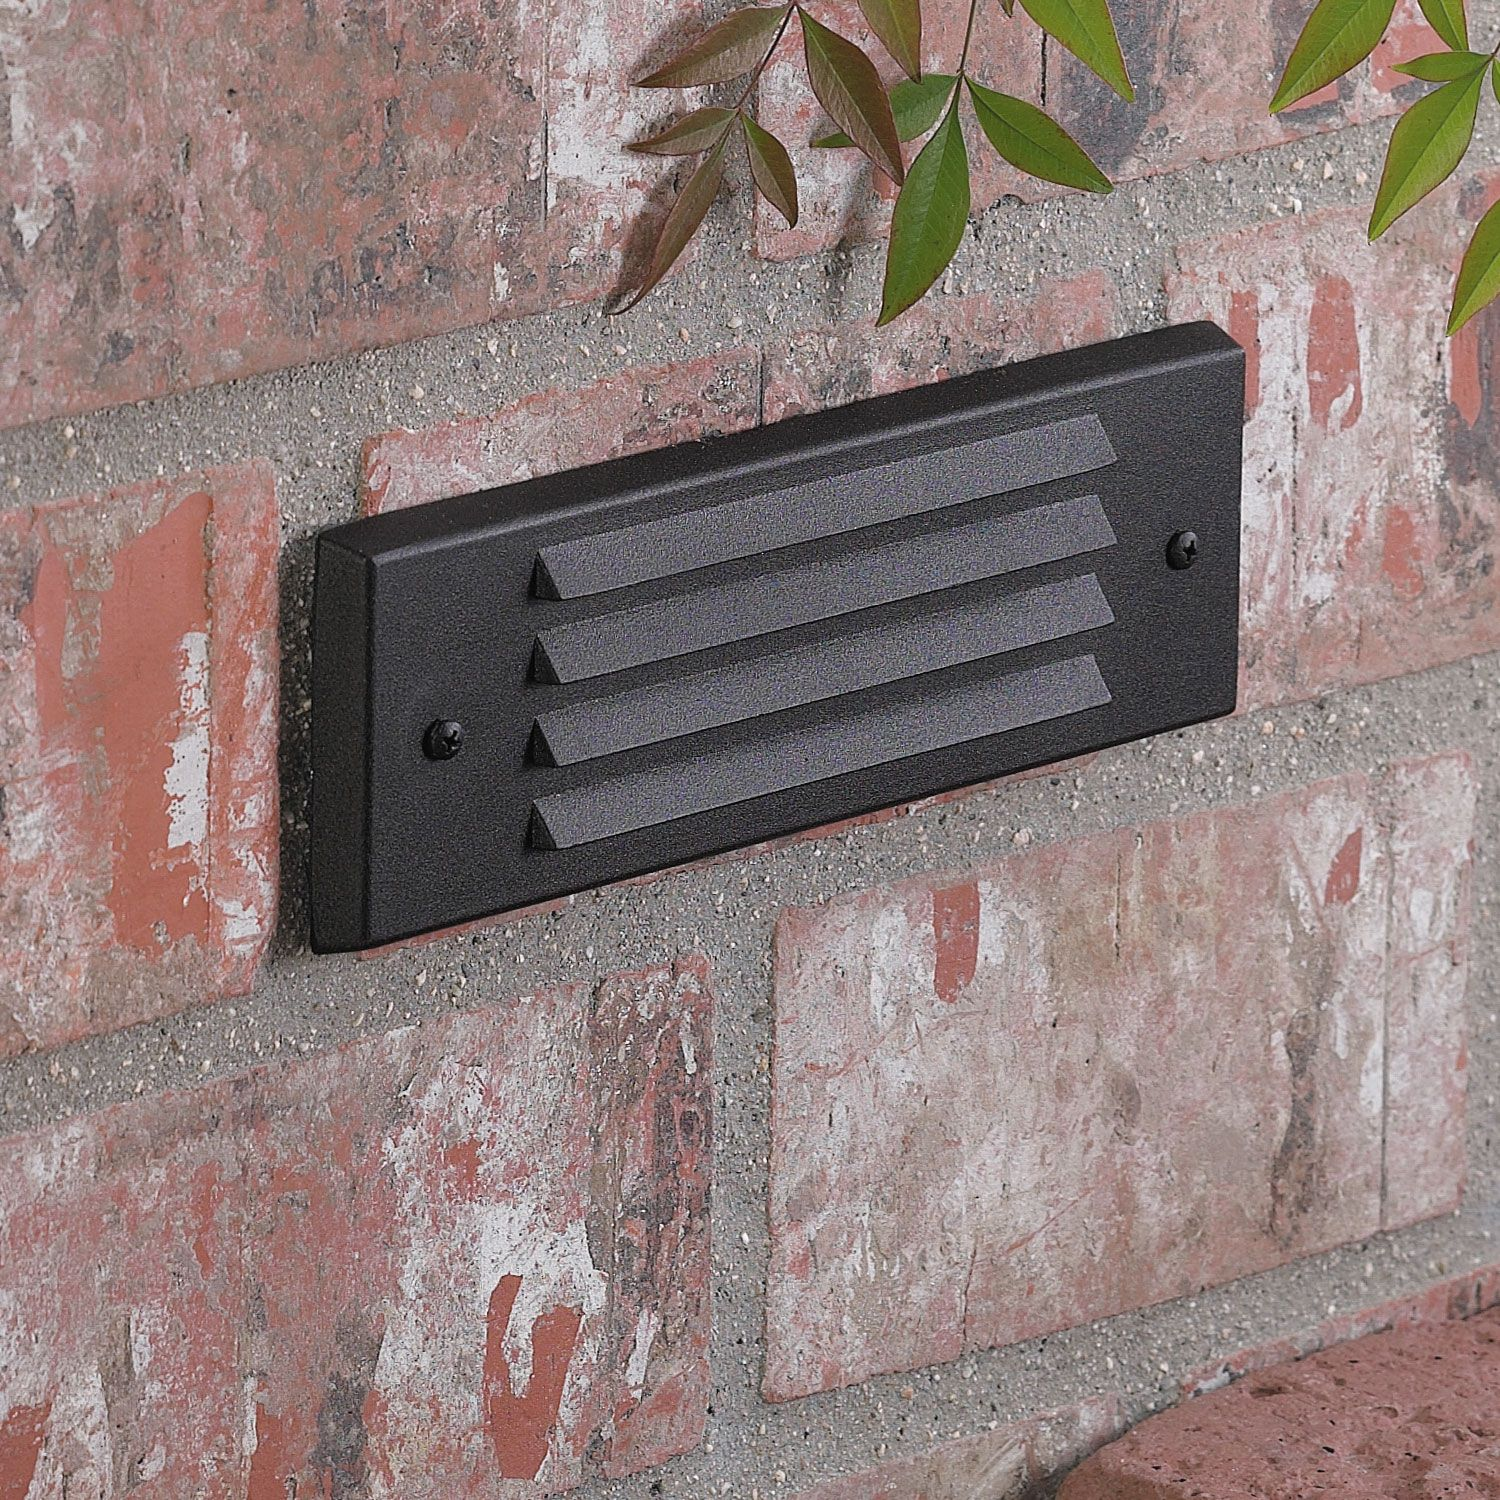 Vista 4246 Recessed Within The Elements Of Steps Or Walls